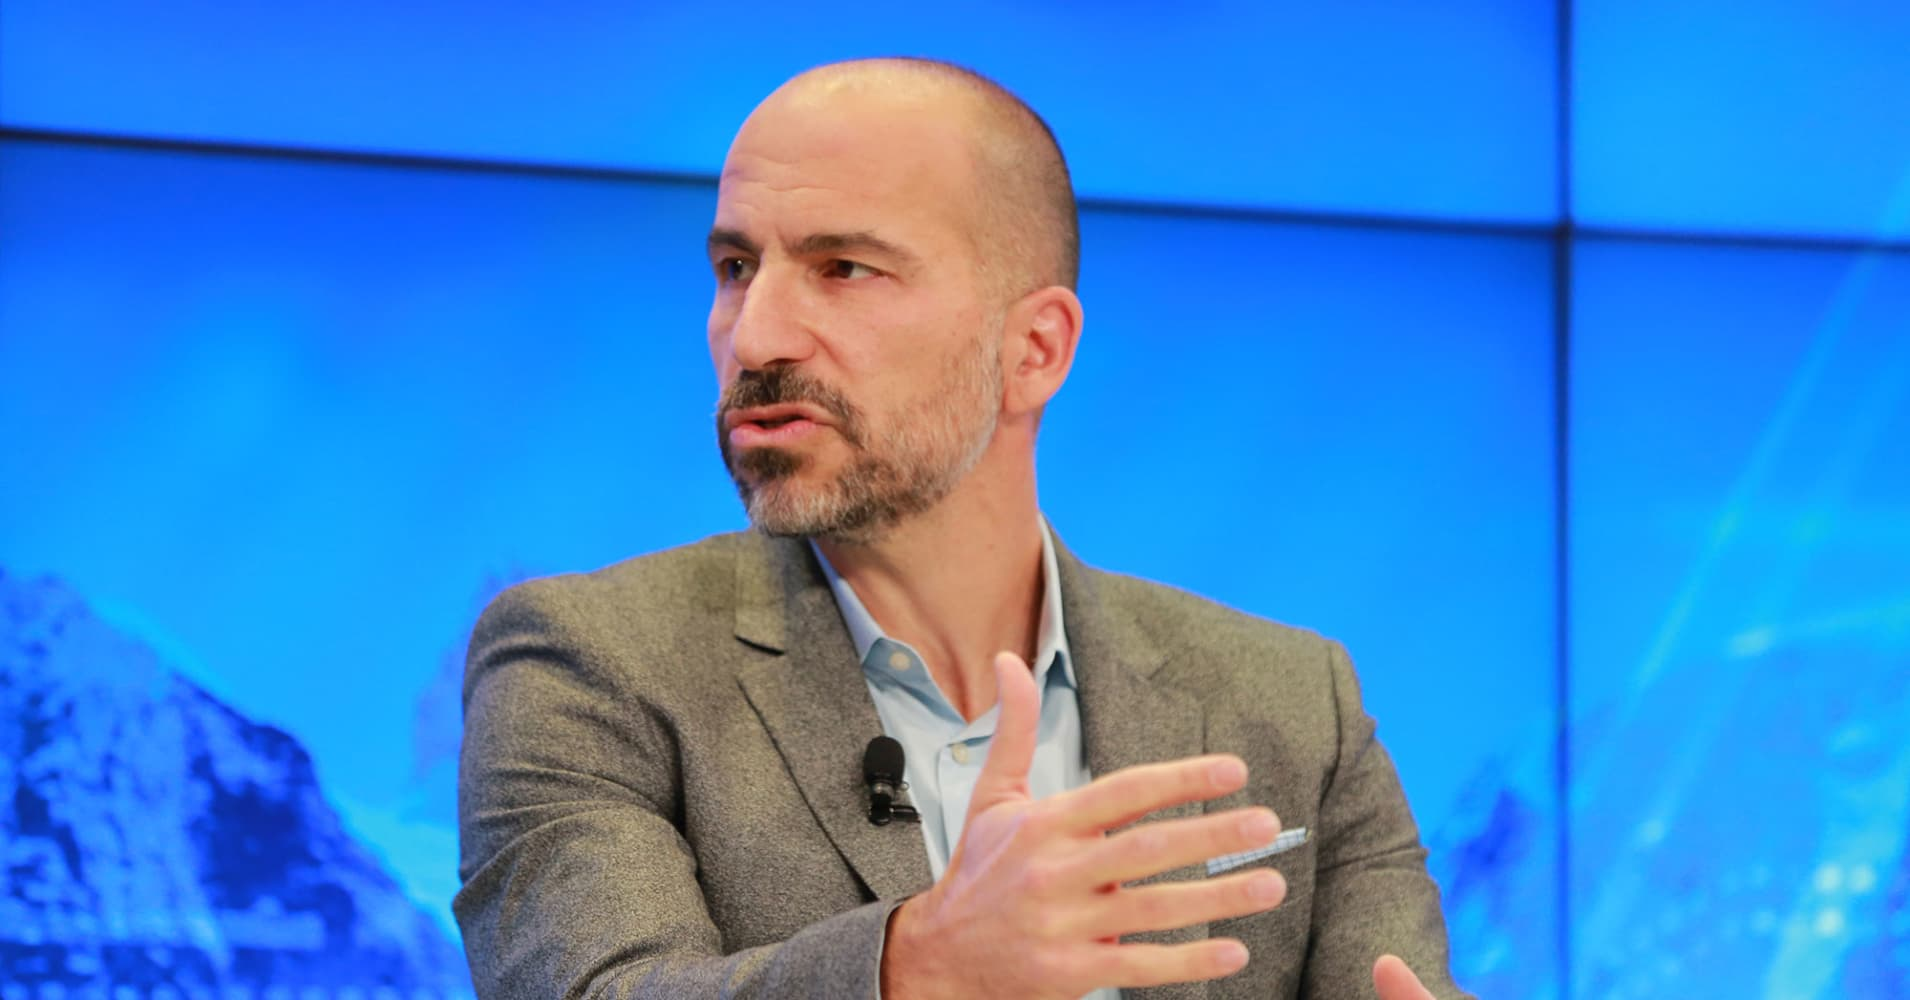 Uber's Dara Khosrowshahi: 'We Have a Long Way to Go' to Regain User Trust